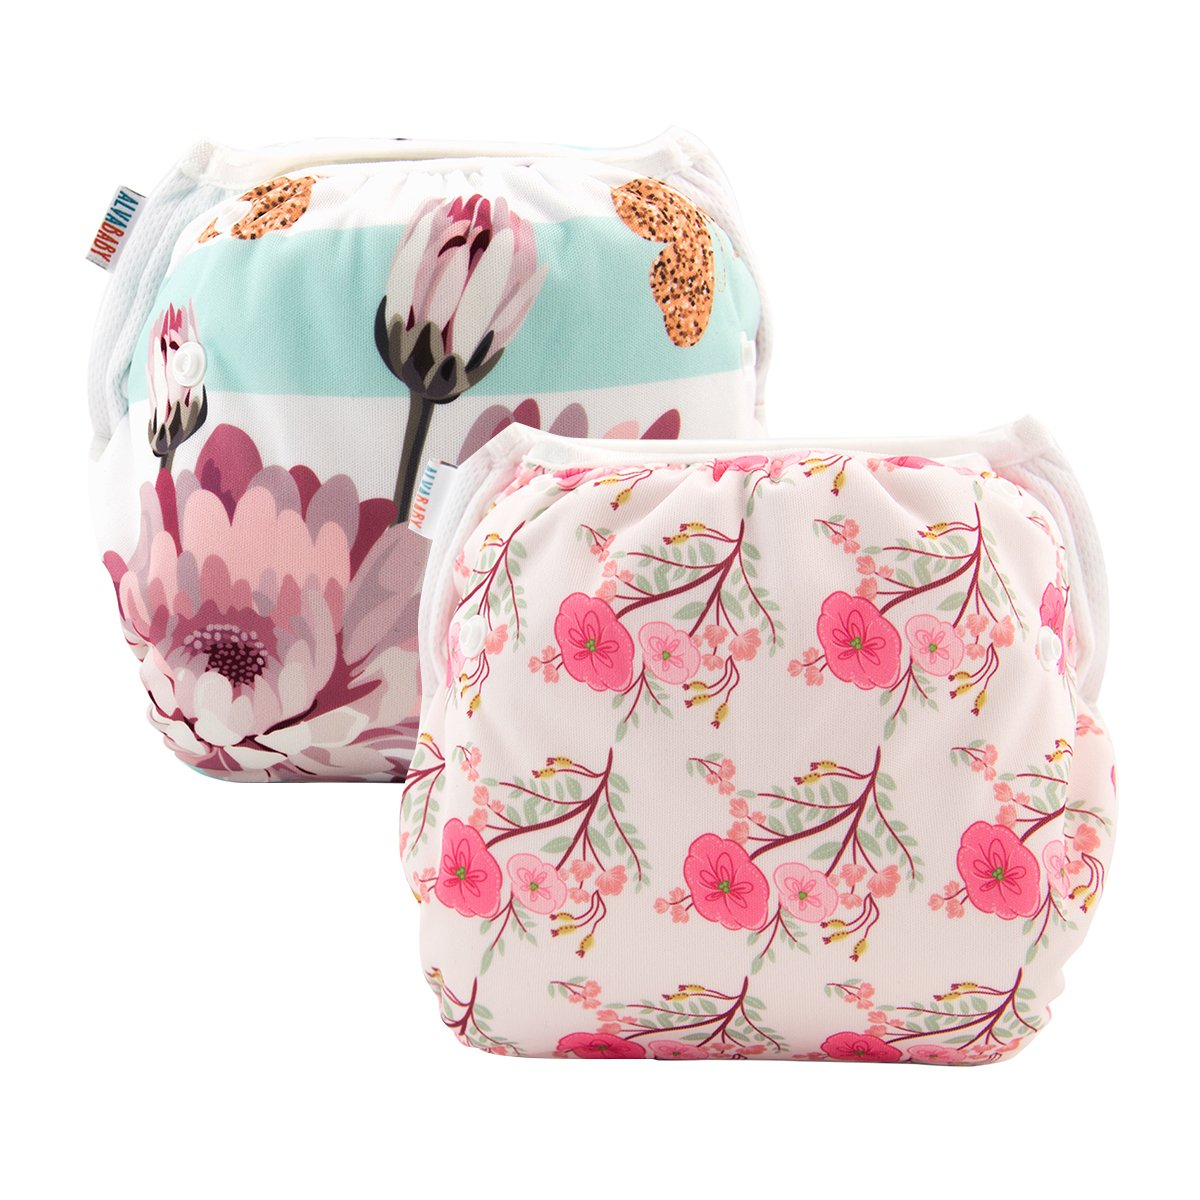 ALVABABY 2pcs Swim Diapers Reuseable Adjustable One Size for Baby Gifts & Swimming Lessons (Flowers, 0-2 Years) YK35-36